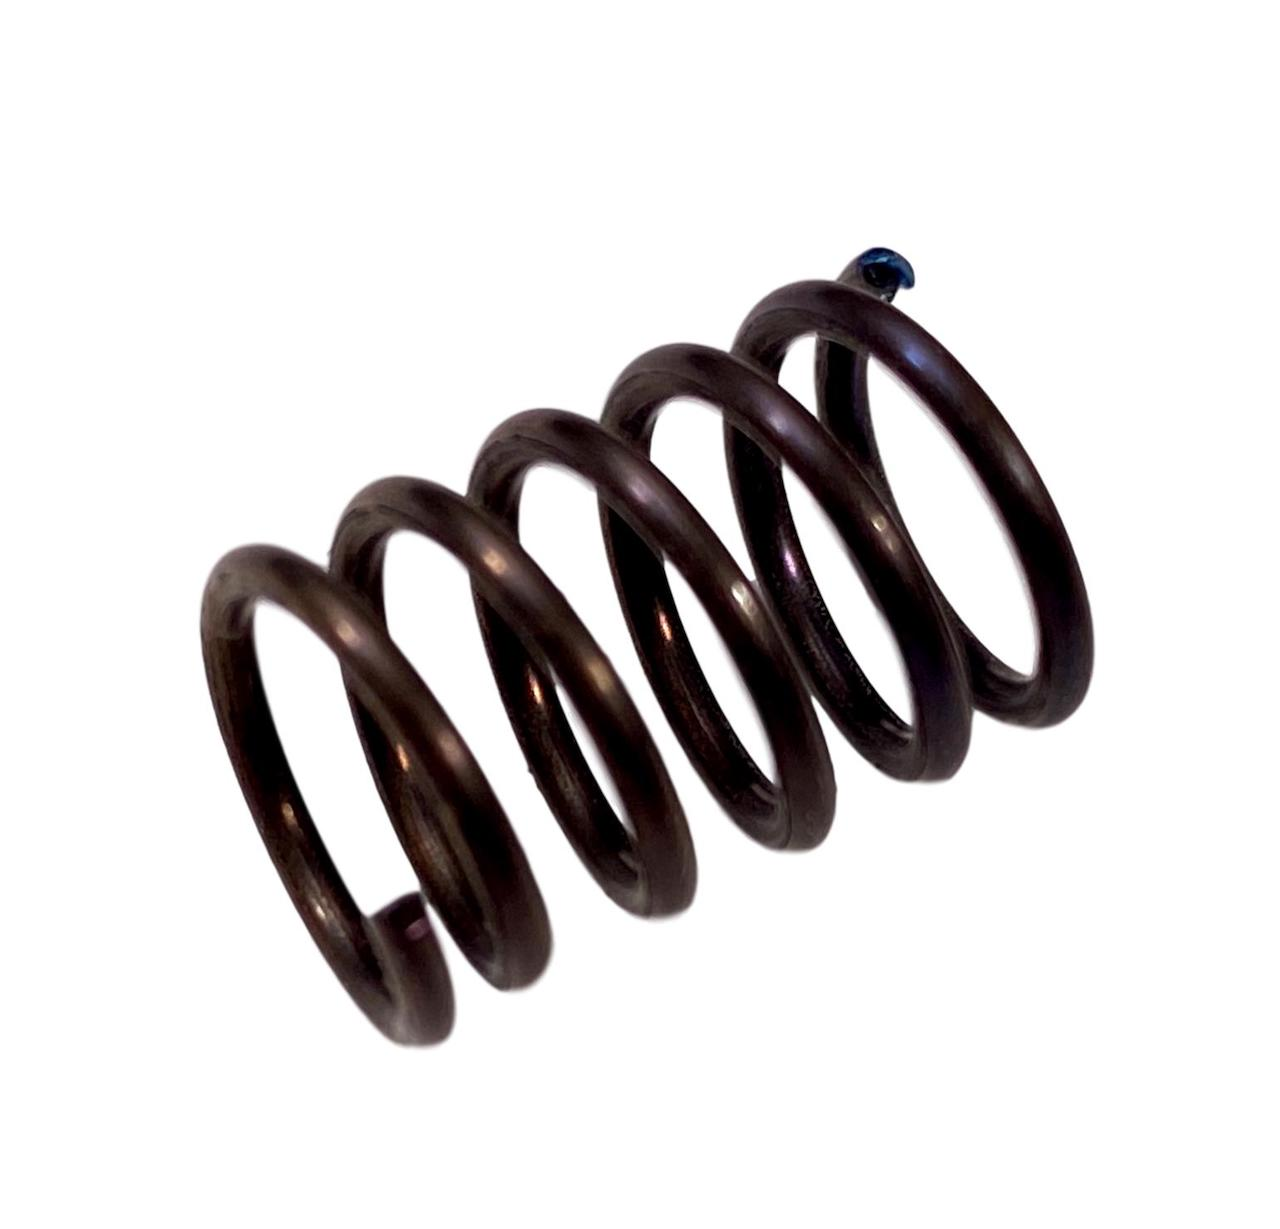 1955 - 1964 Chevy Gear Shift Lever Spring